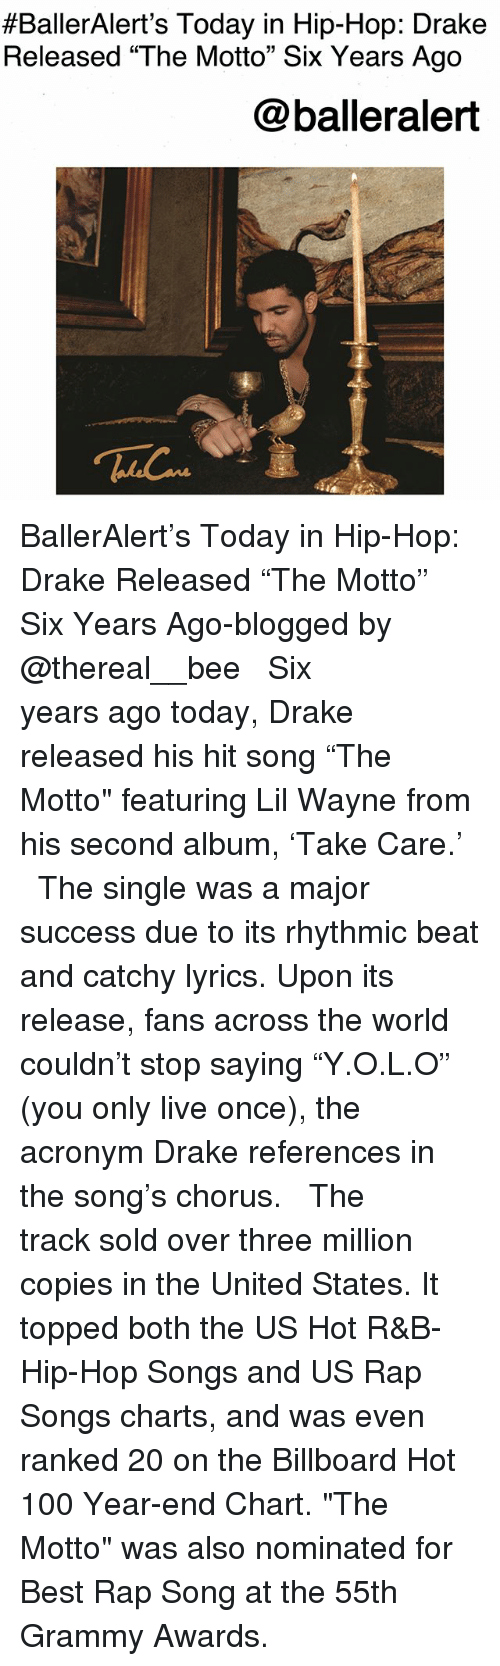 "Grammy Awards:  #BallerAlert's Today in Hip-Hop: Drake  Released ""The Motto"" Six Years Ago  @balleralert BallerAlert's Today in Hip-Hop: Drake Released ""The Motto"" Six Years Ago-blogged by @thereal__bee ⠀⠀⠀⠀⠀⠀⠀⠀⠀ ⠀⠀ Six years ago today, Drake released his hit song ""The Motto"" featuring Lil Wayne from his second album, 'Take Care.' ⠀⠀⠀⠀⠀⠀⠀⠀⠀ ⠀⠀ The single was a major success due to its rhythmic beat and catchy lyrics. Upon its release, fans across the world couldn't stop saying ""Y.O.L.O"" (you only live once), the acronym Drake references in the song's chorus. ⠀⠀⠀⠀⠀⠀⠀⠀⠀ ⠀⠀ The track sold over three million copies in the United States. It topped both the US Hot R&B-Hip-Hop Songs and US Rap Songs charts, and was even ranked 20 on the Billboard Hot 100 Year-end Chart. ""The Motto"" was also nominated for Best Rap Song at the 55th Grammy Awards."